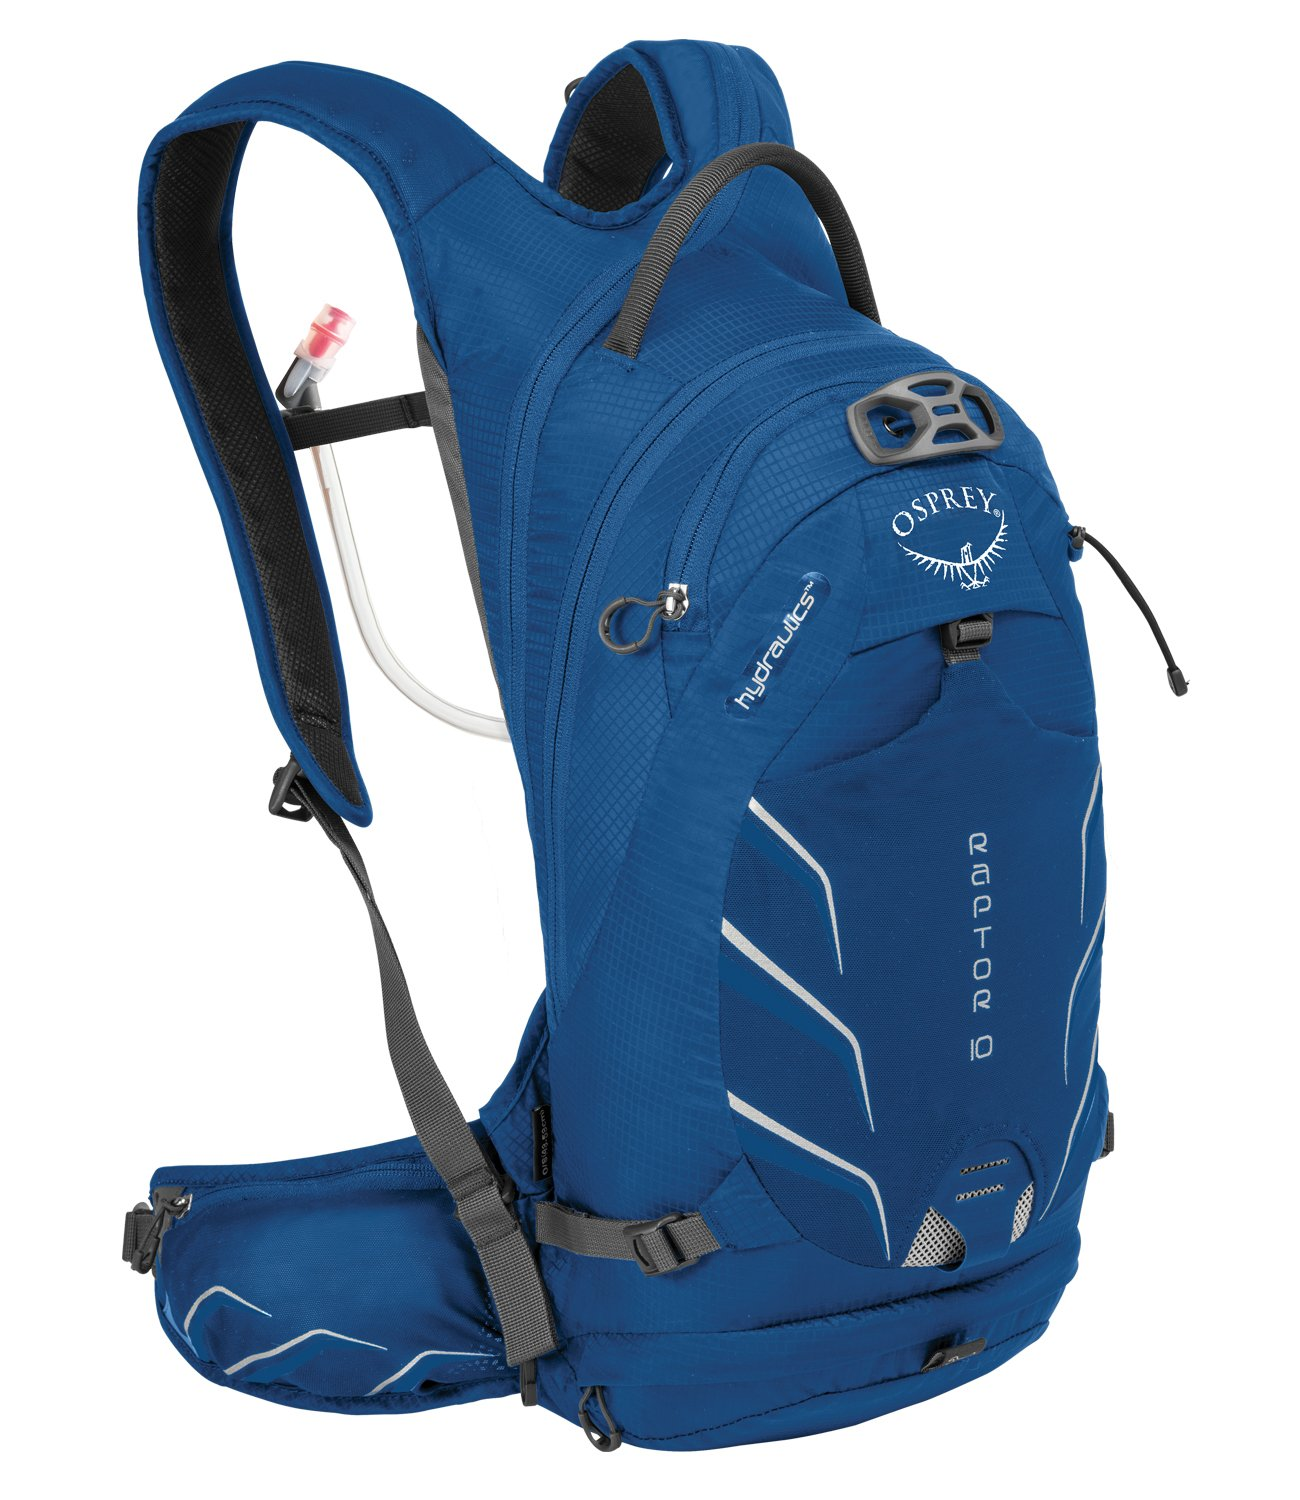 Osprey Raptor 10 Bike Backpack